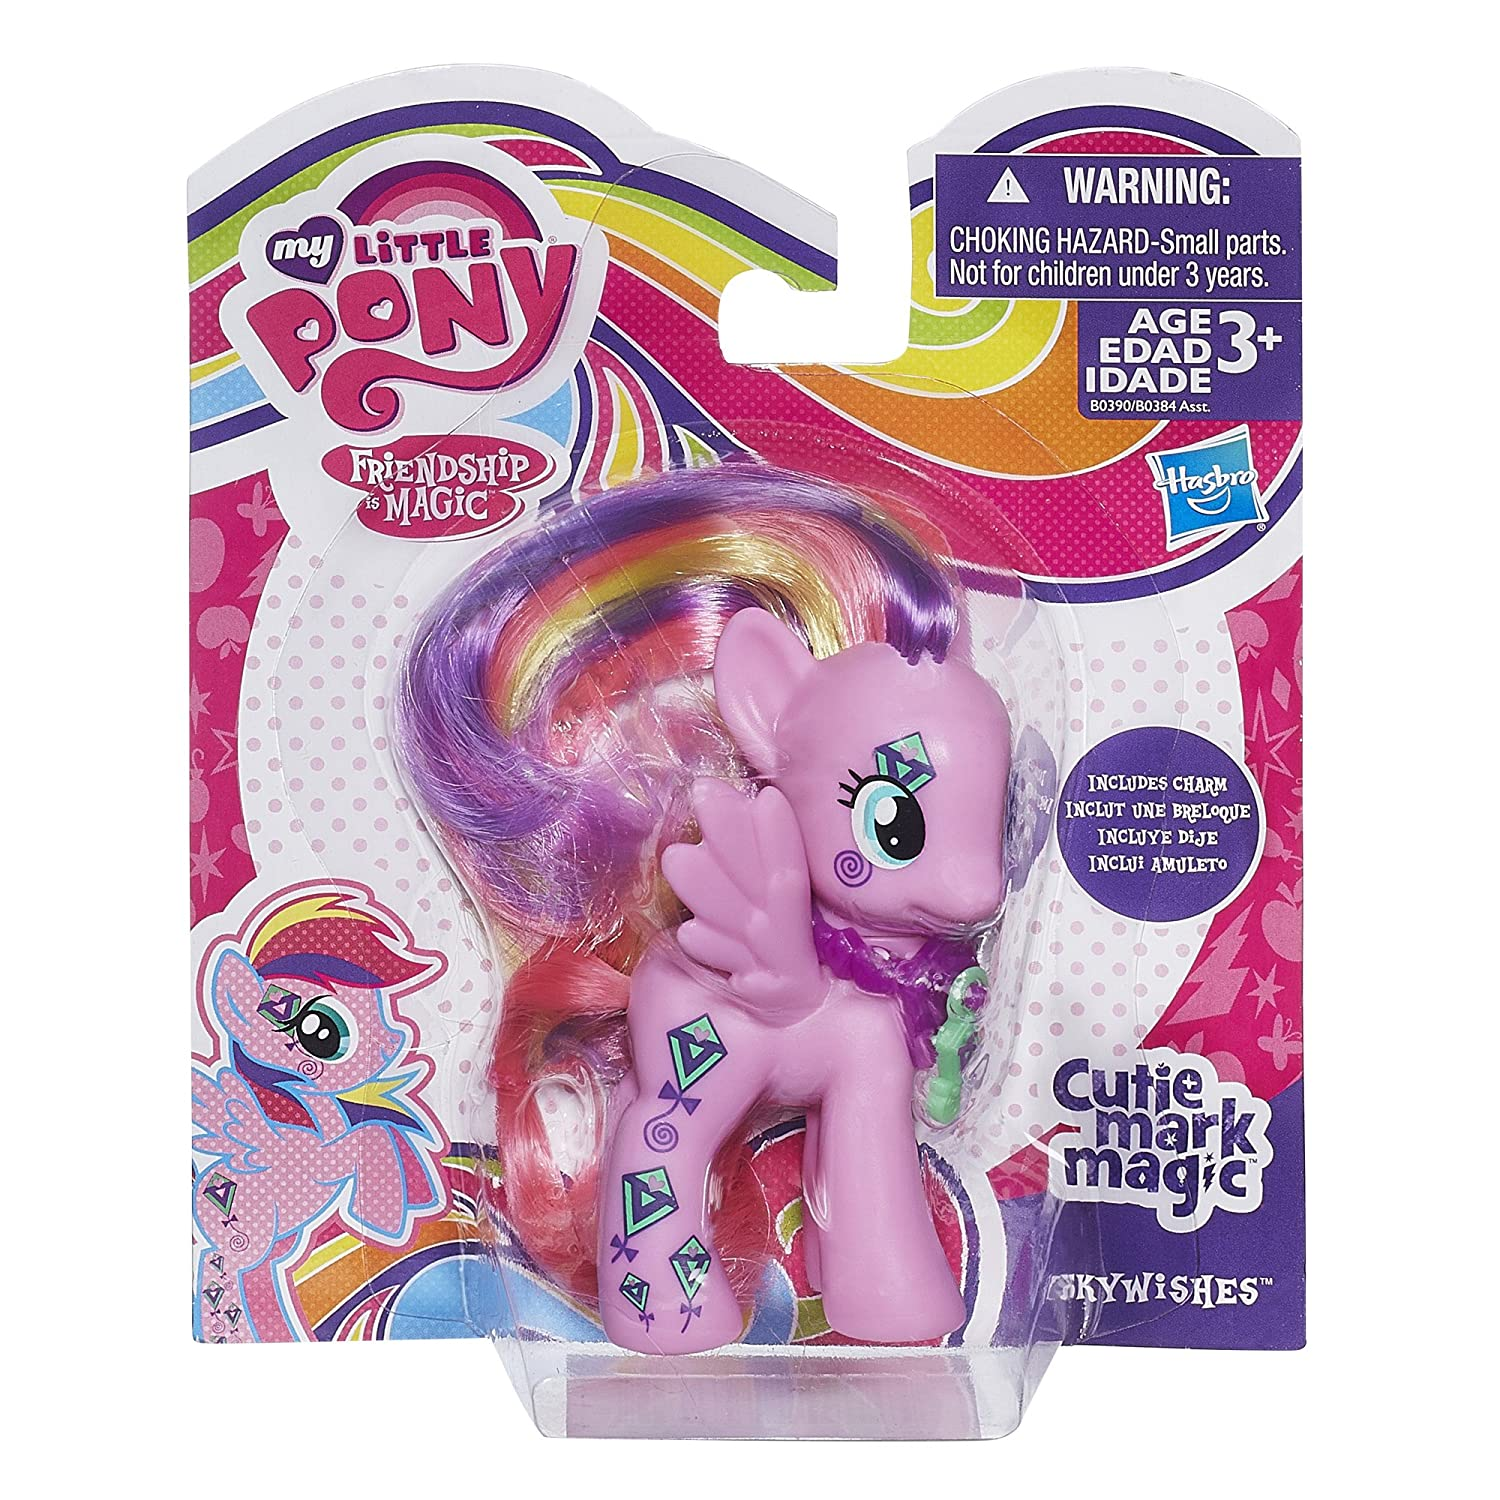 Amazon.com: My Little Pony Cutie Mark Magic Skywishes Figure: Toys & Games